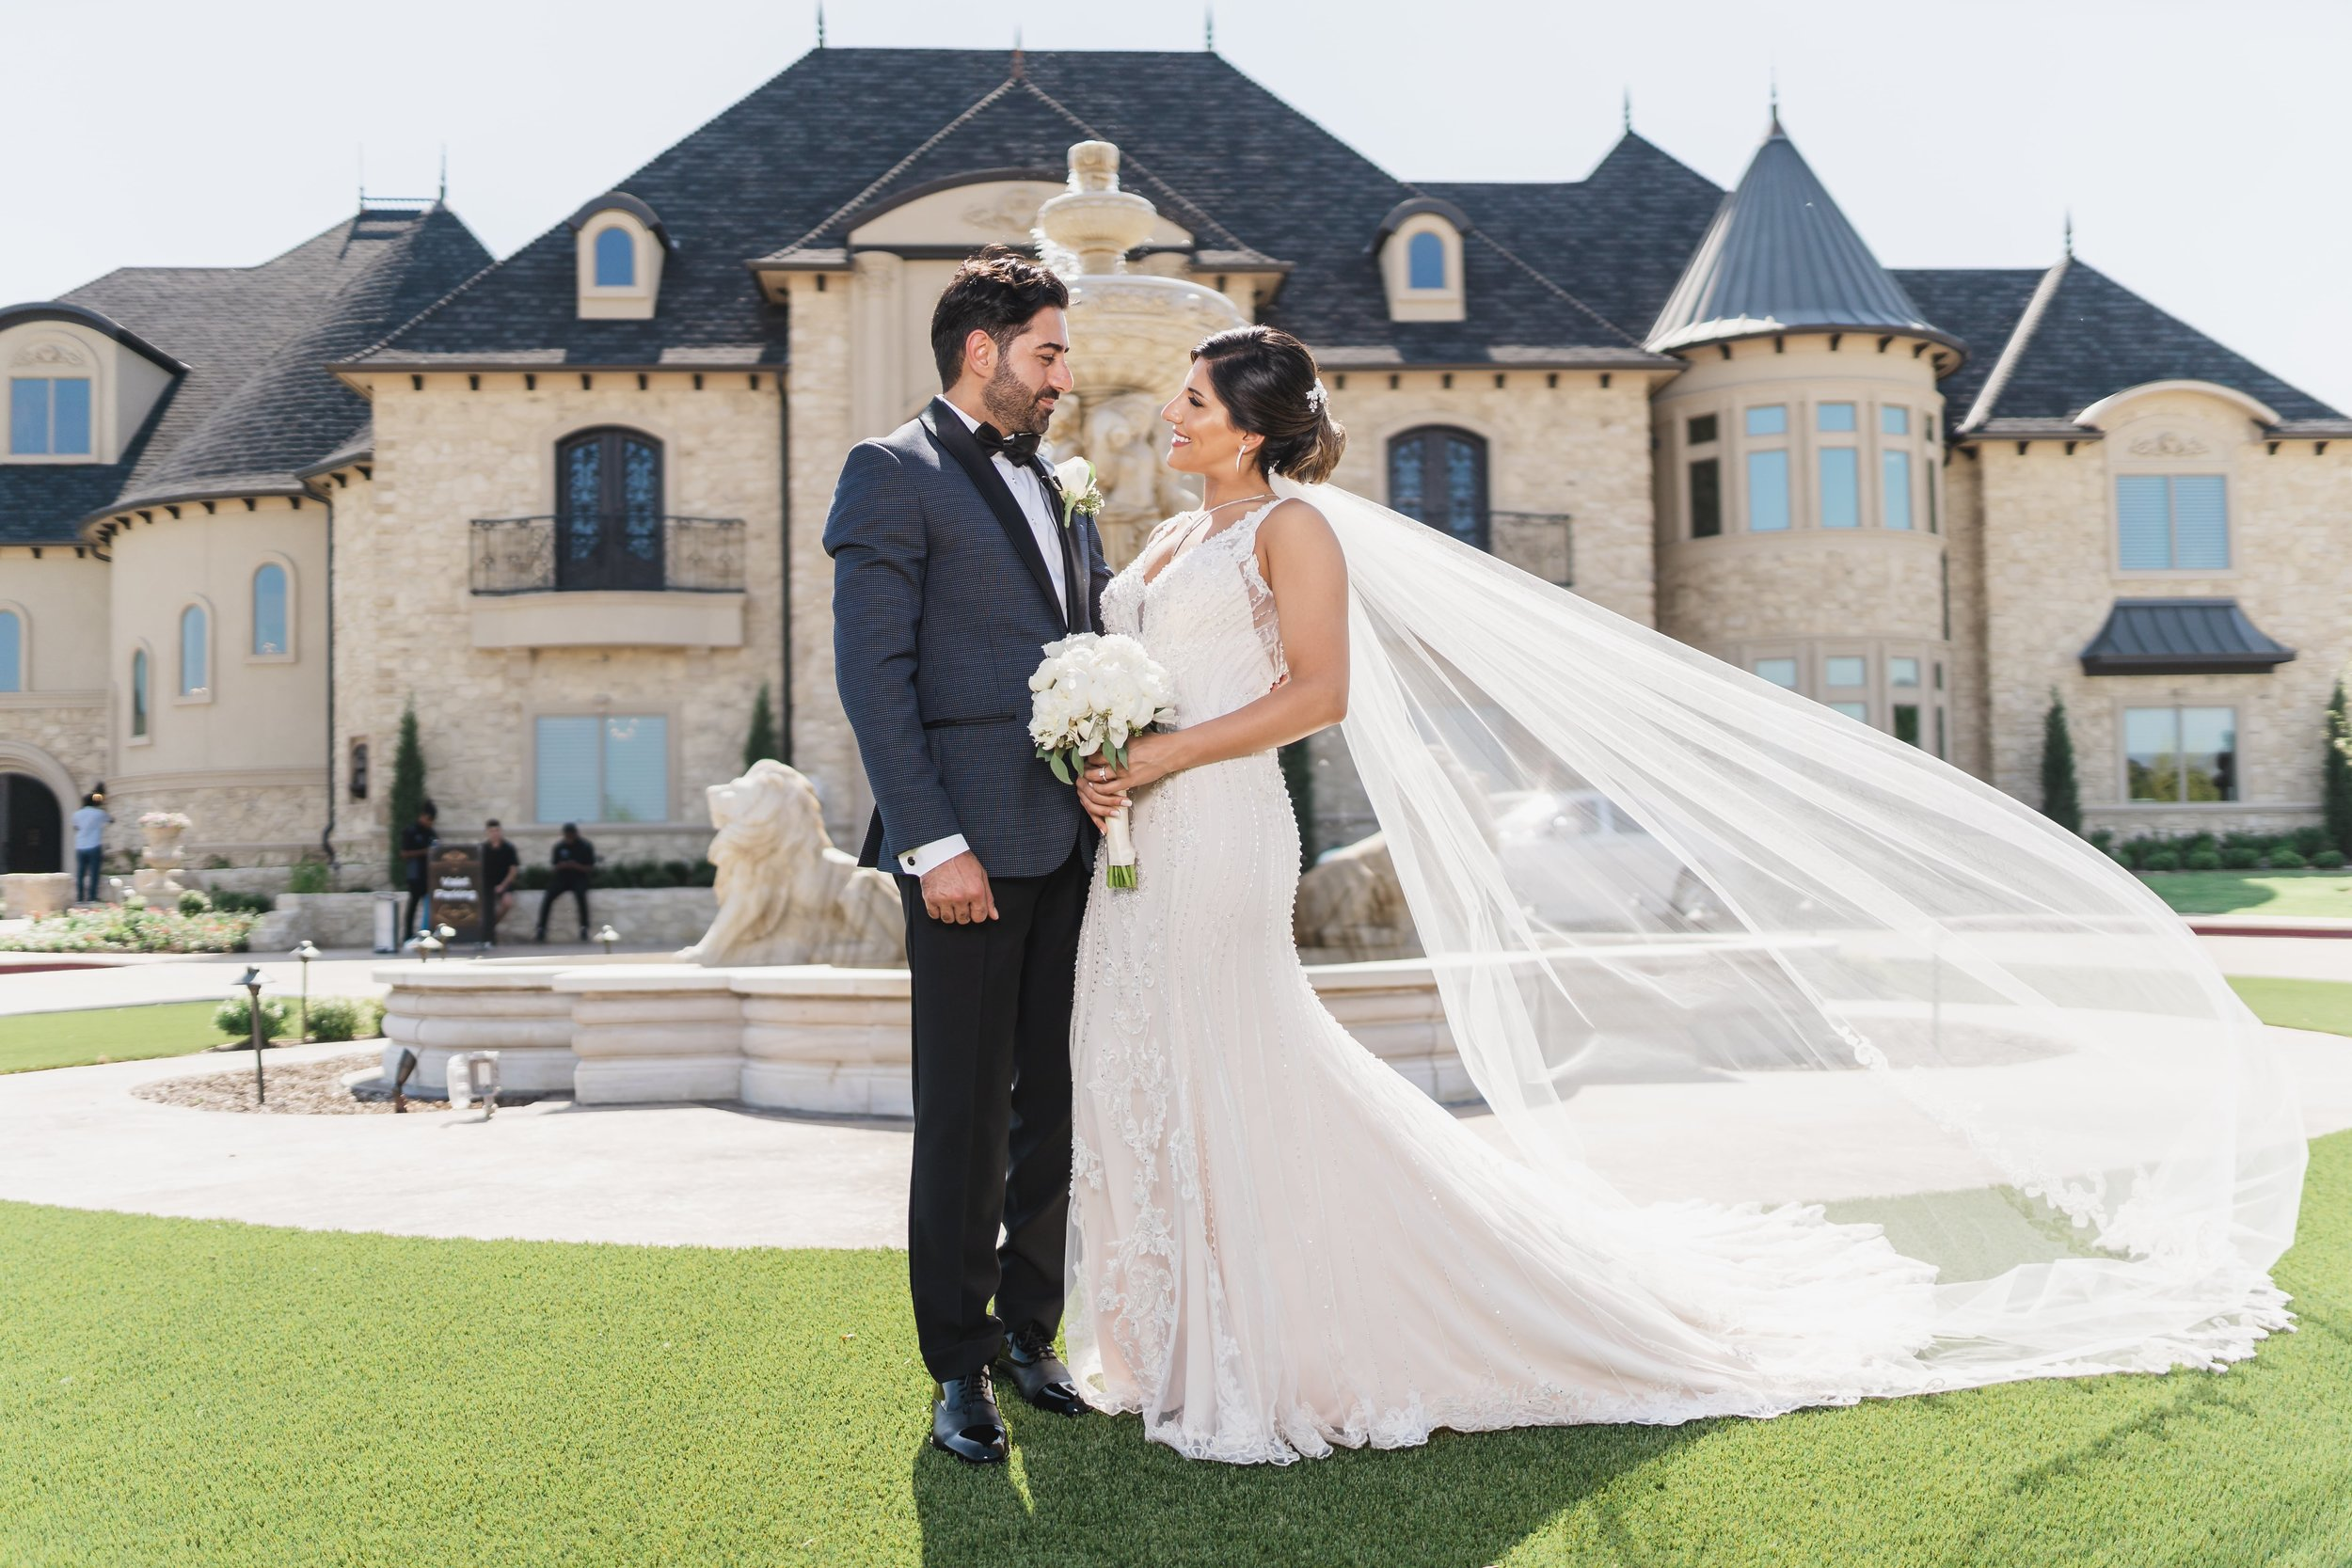 Bride with wind-blown veil facing her groom in front of a mansion.